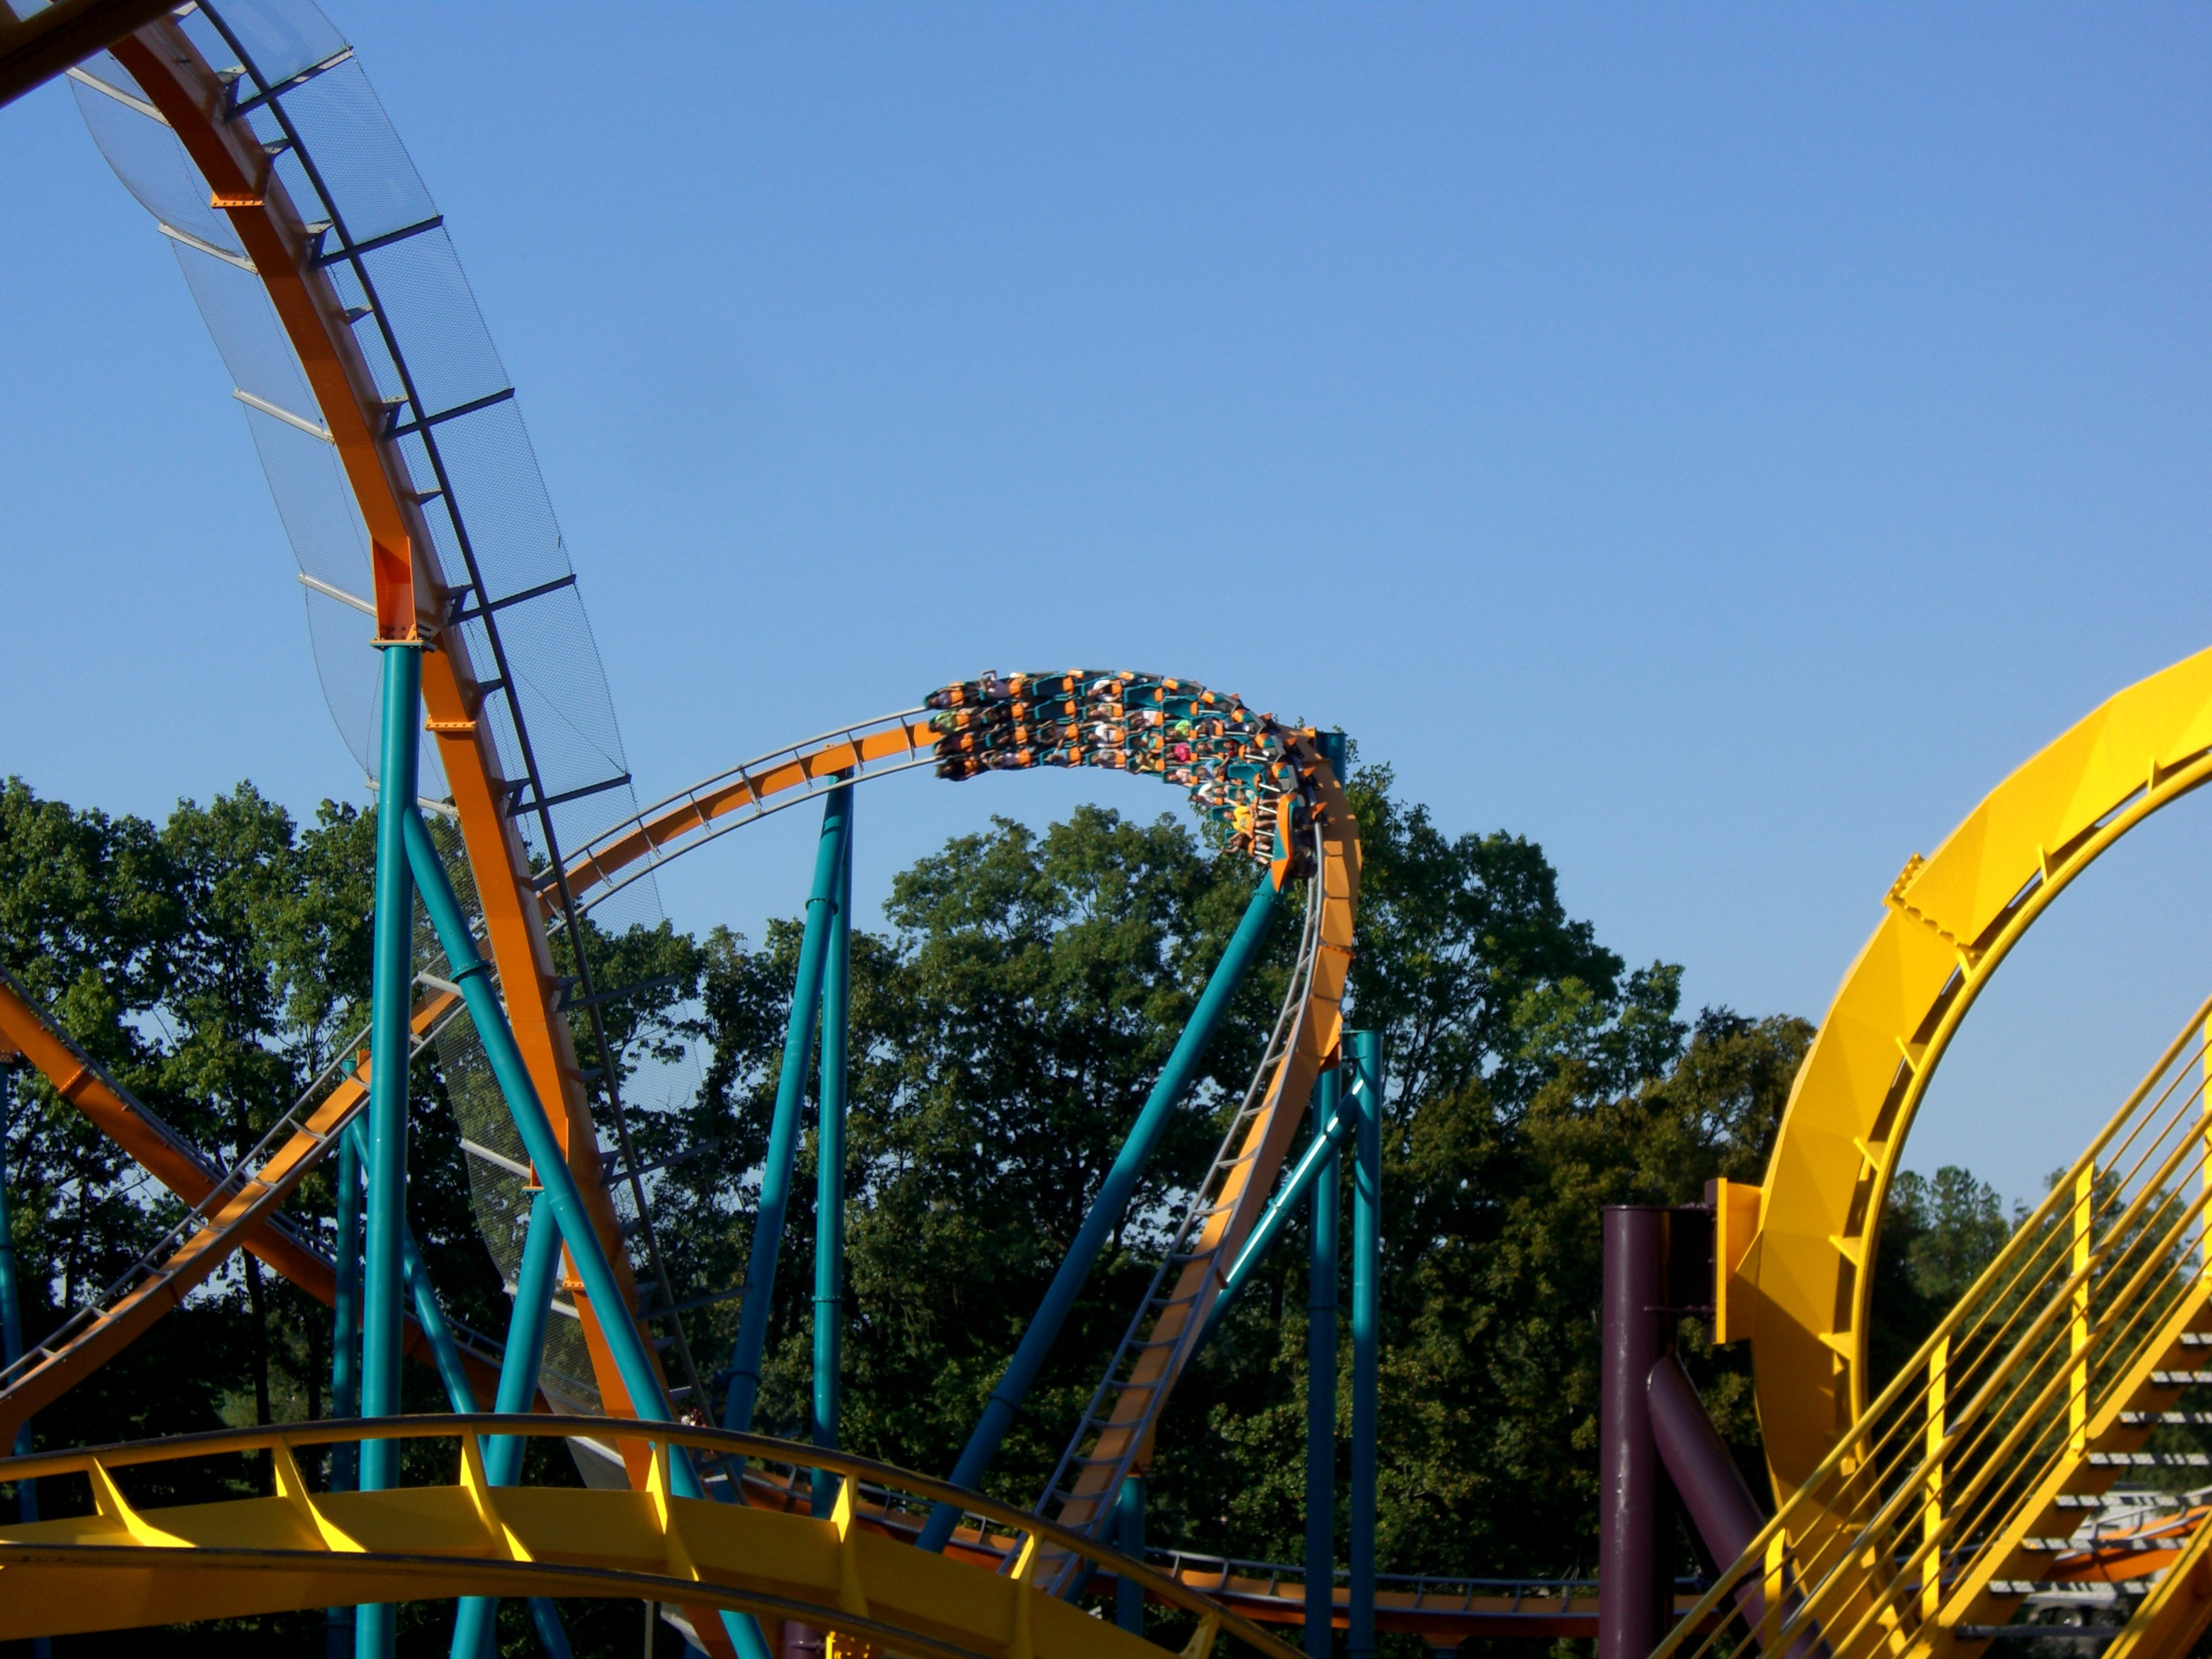 Goliath roller coaster at Six Flags Over Georgia